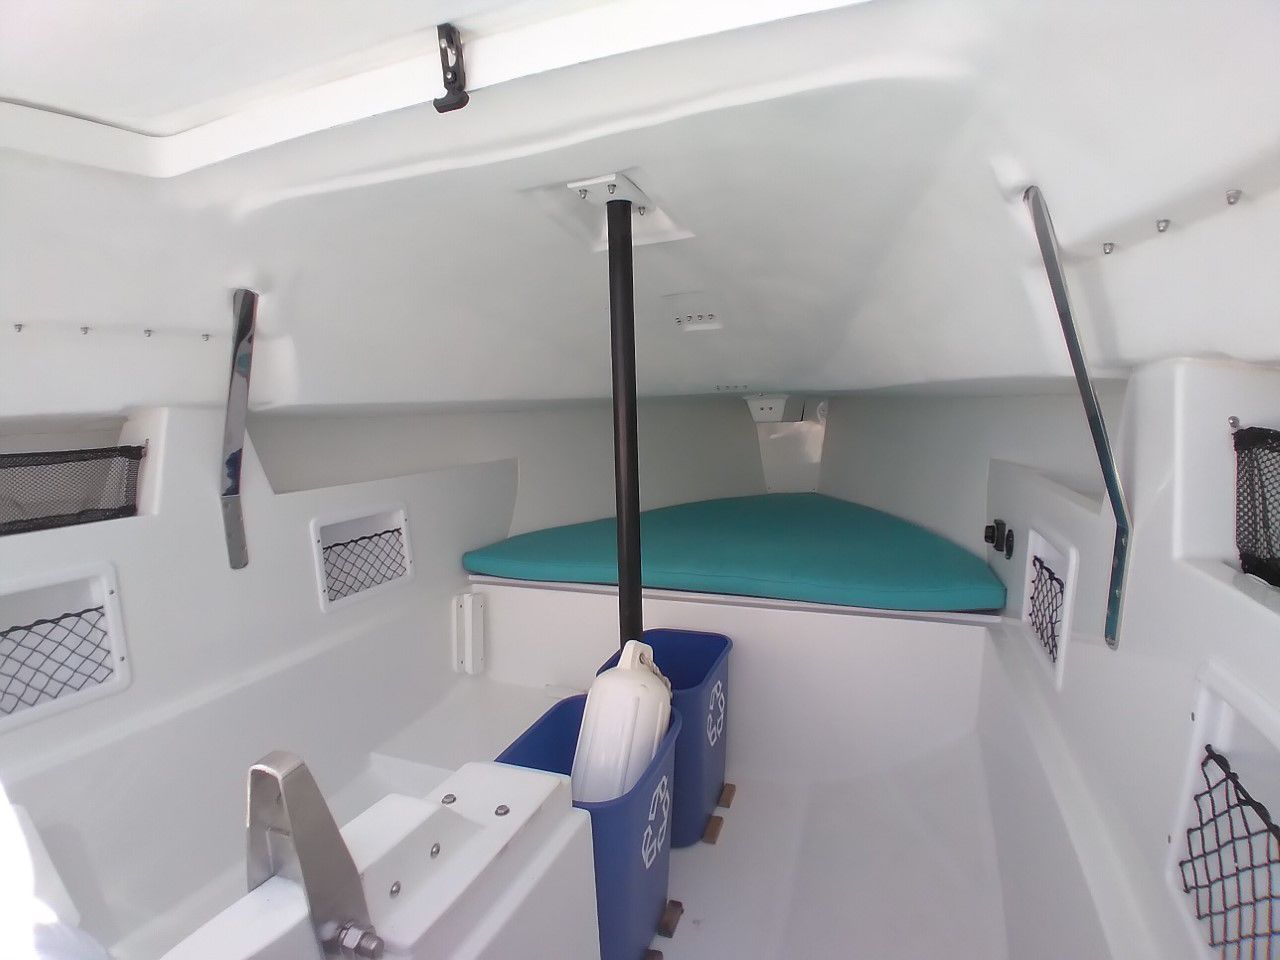 The interior of the Tartan 245, with lifting keel box.